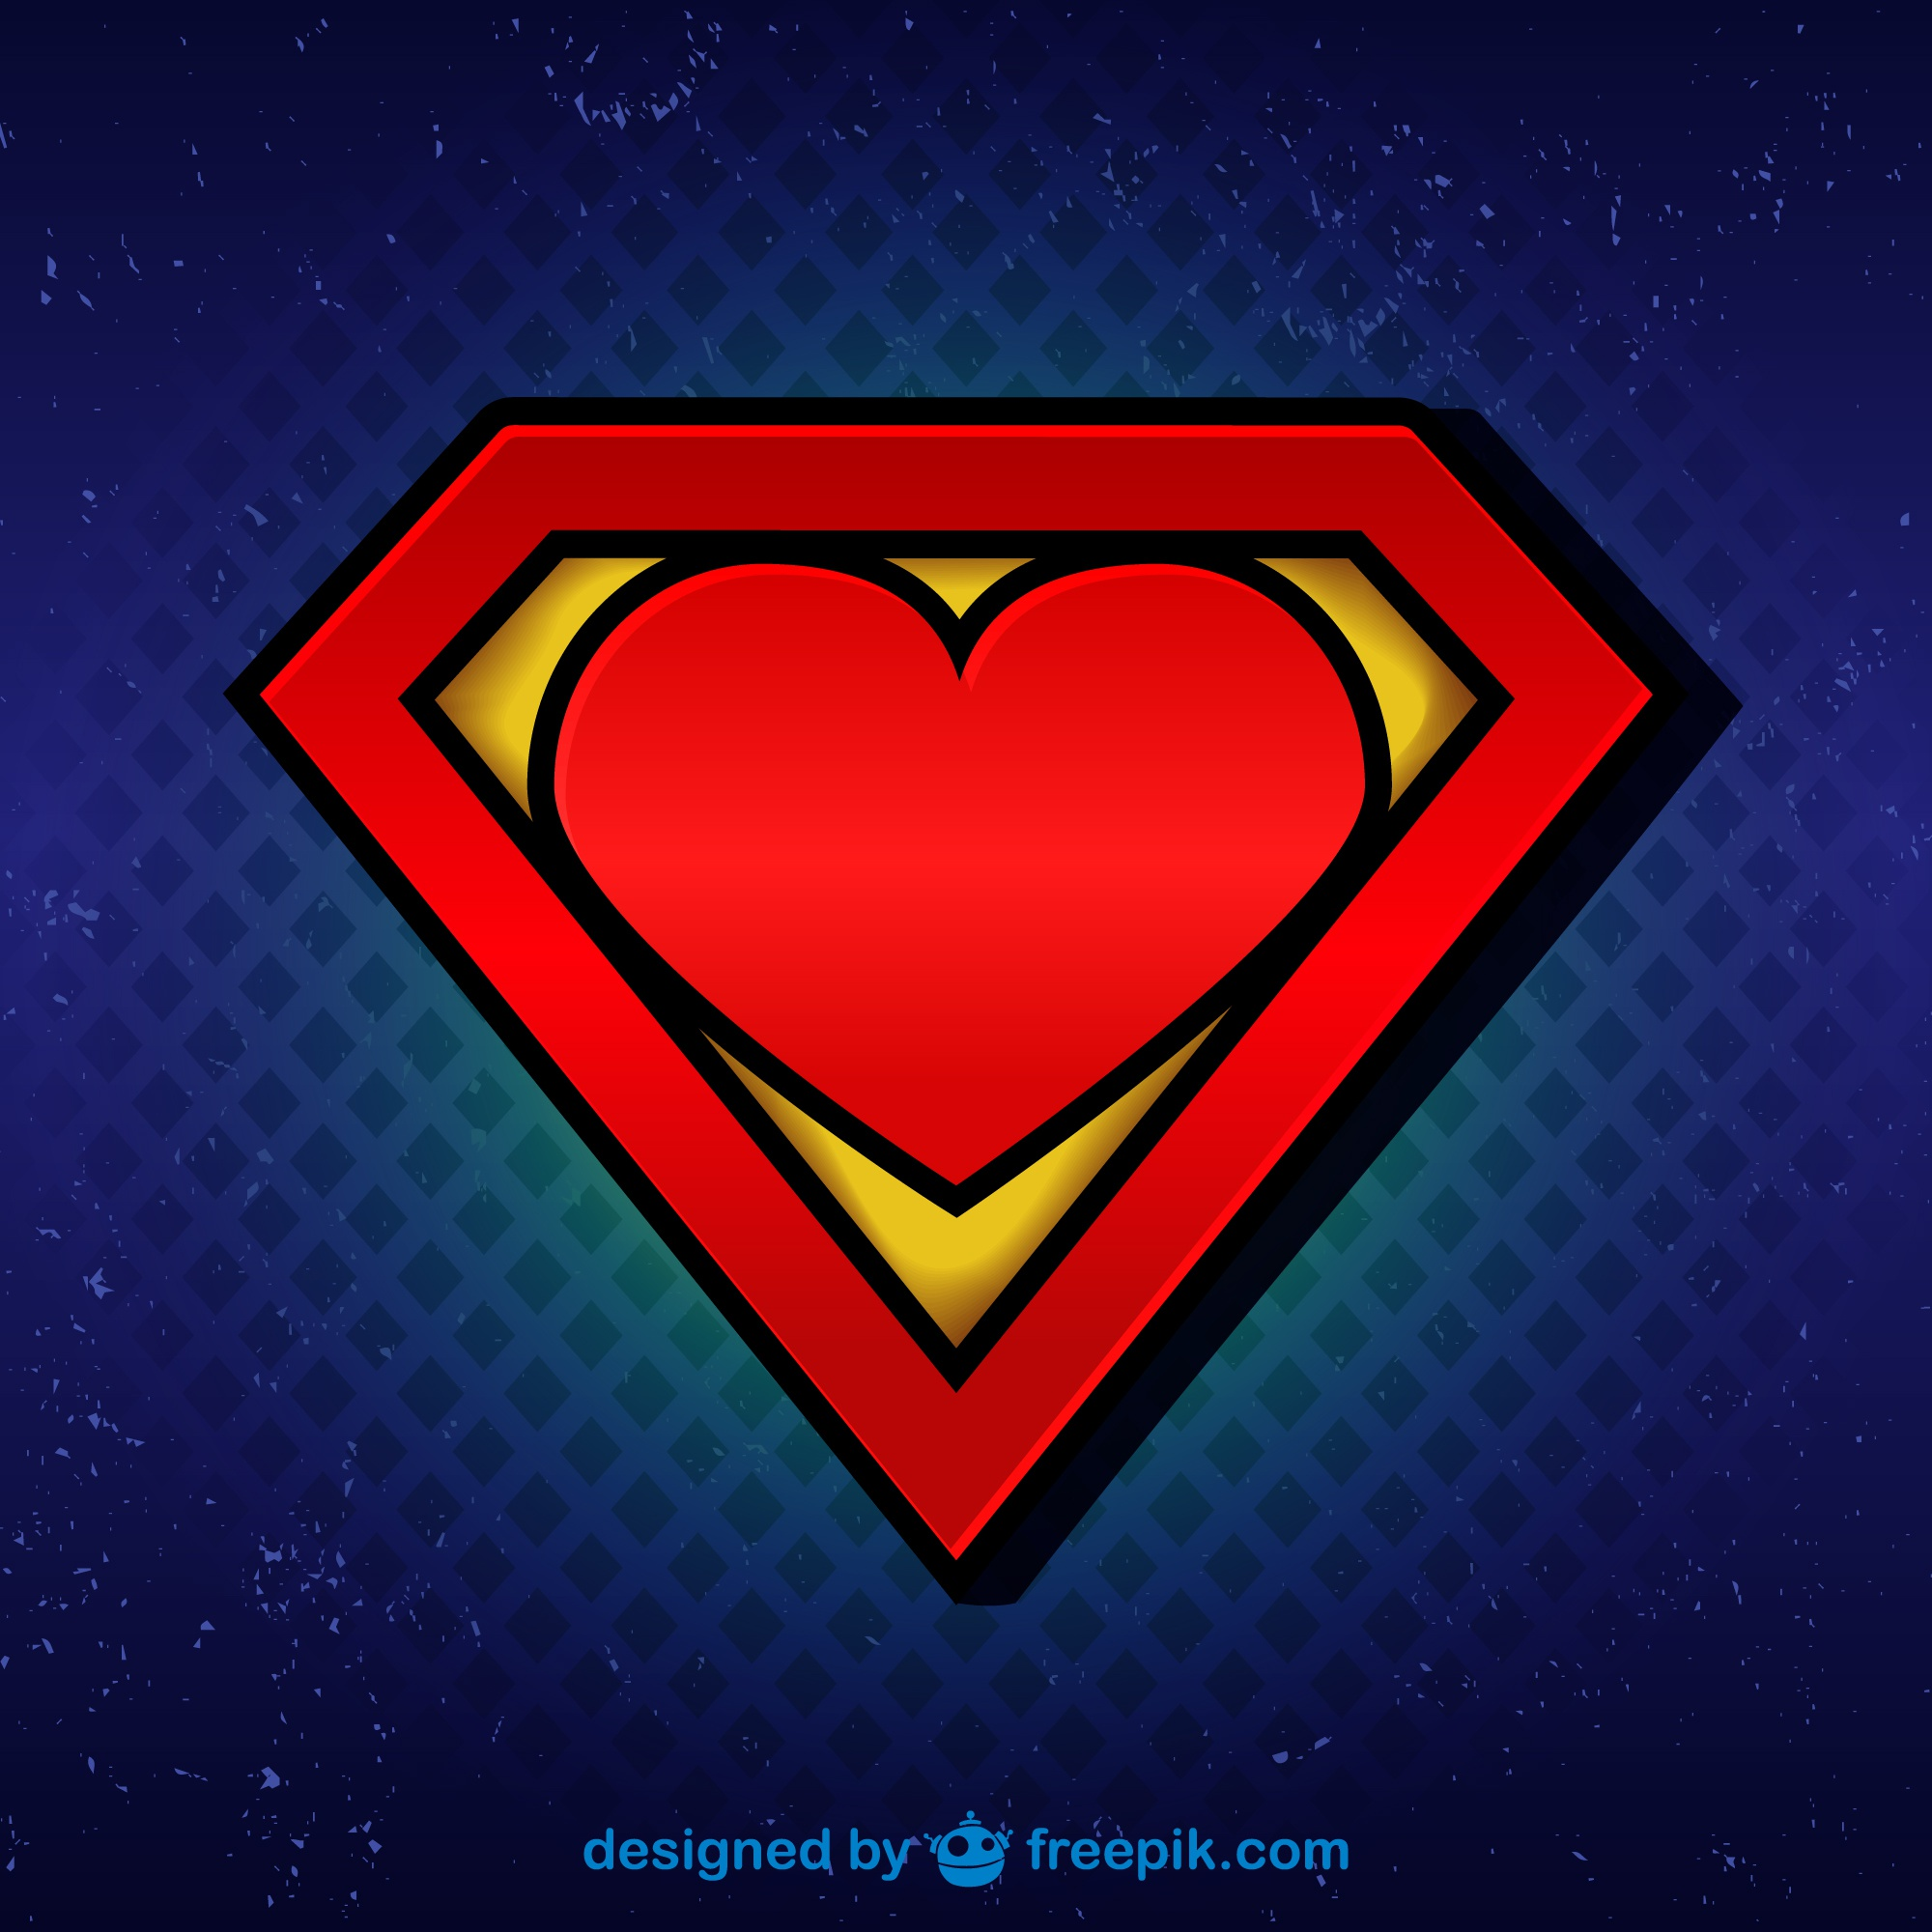 Superman logo with heart